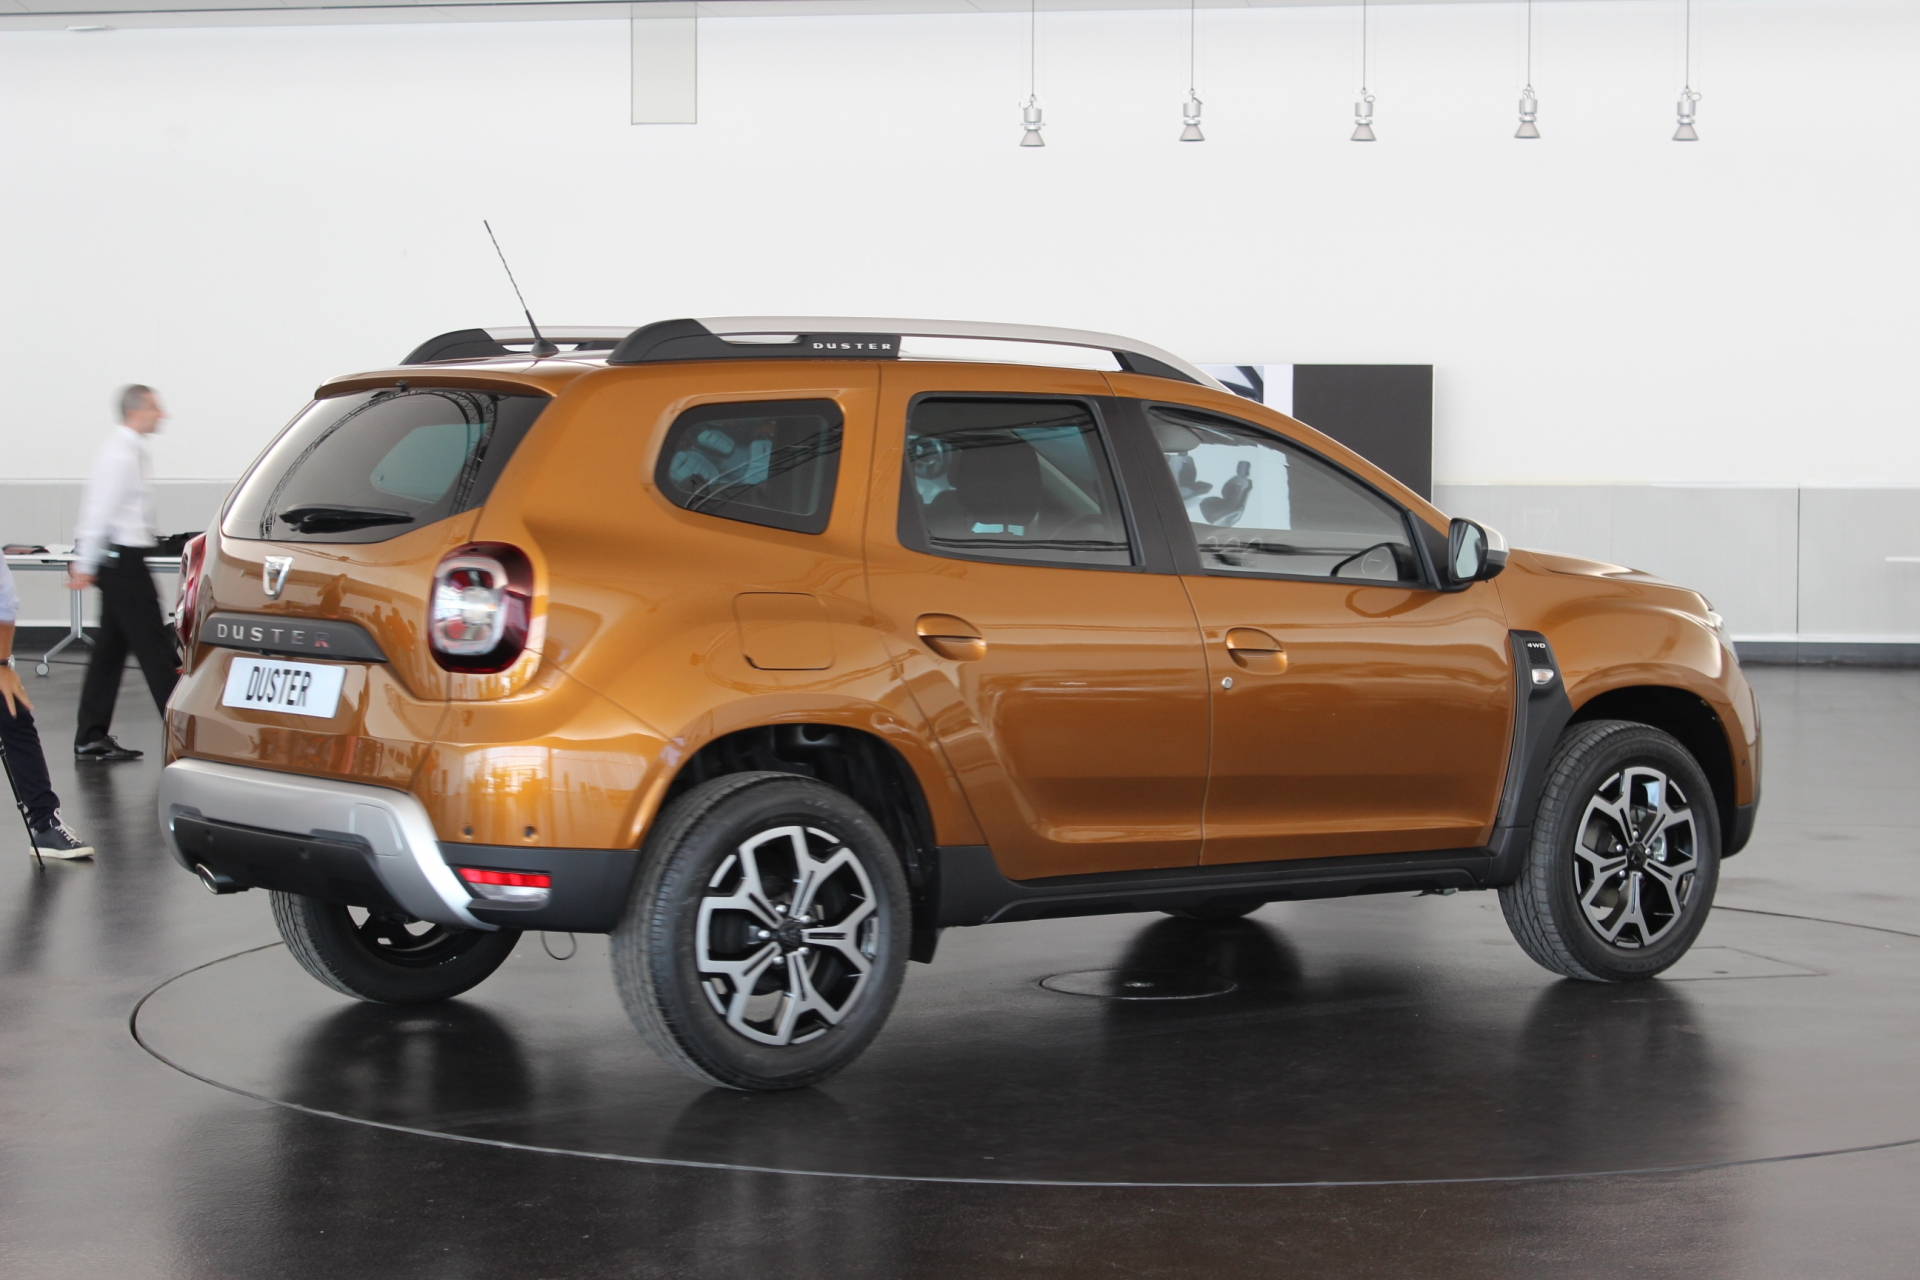 Renault Duster (Рено Дастер) 2018 - фото, цена